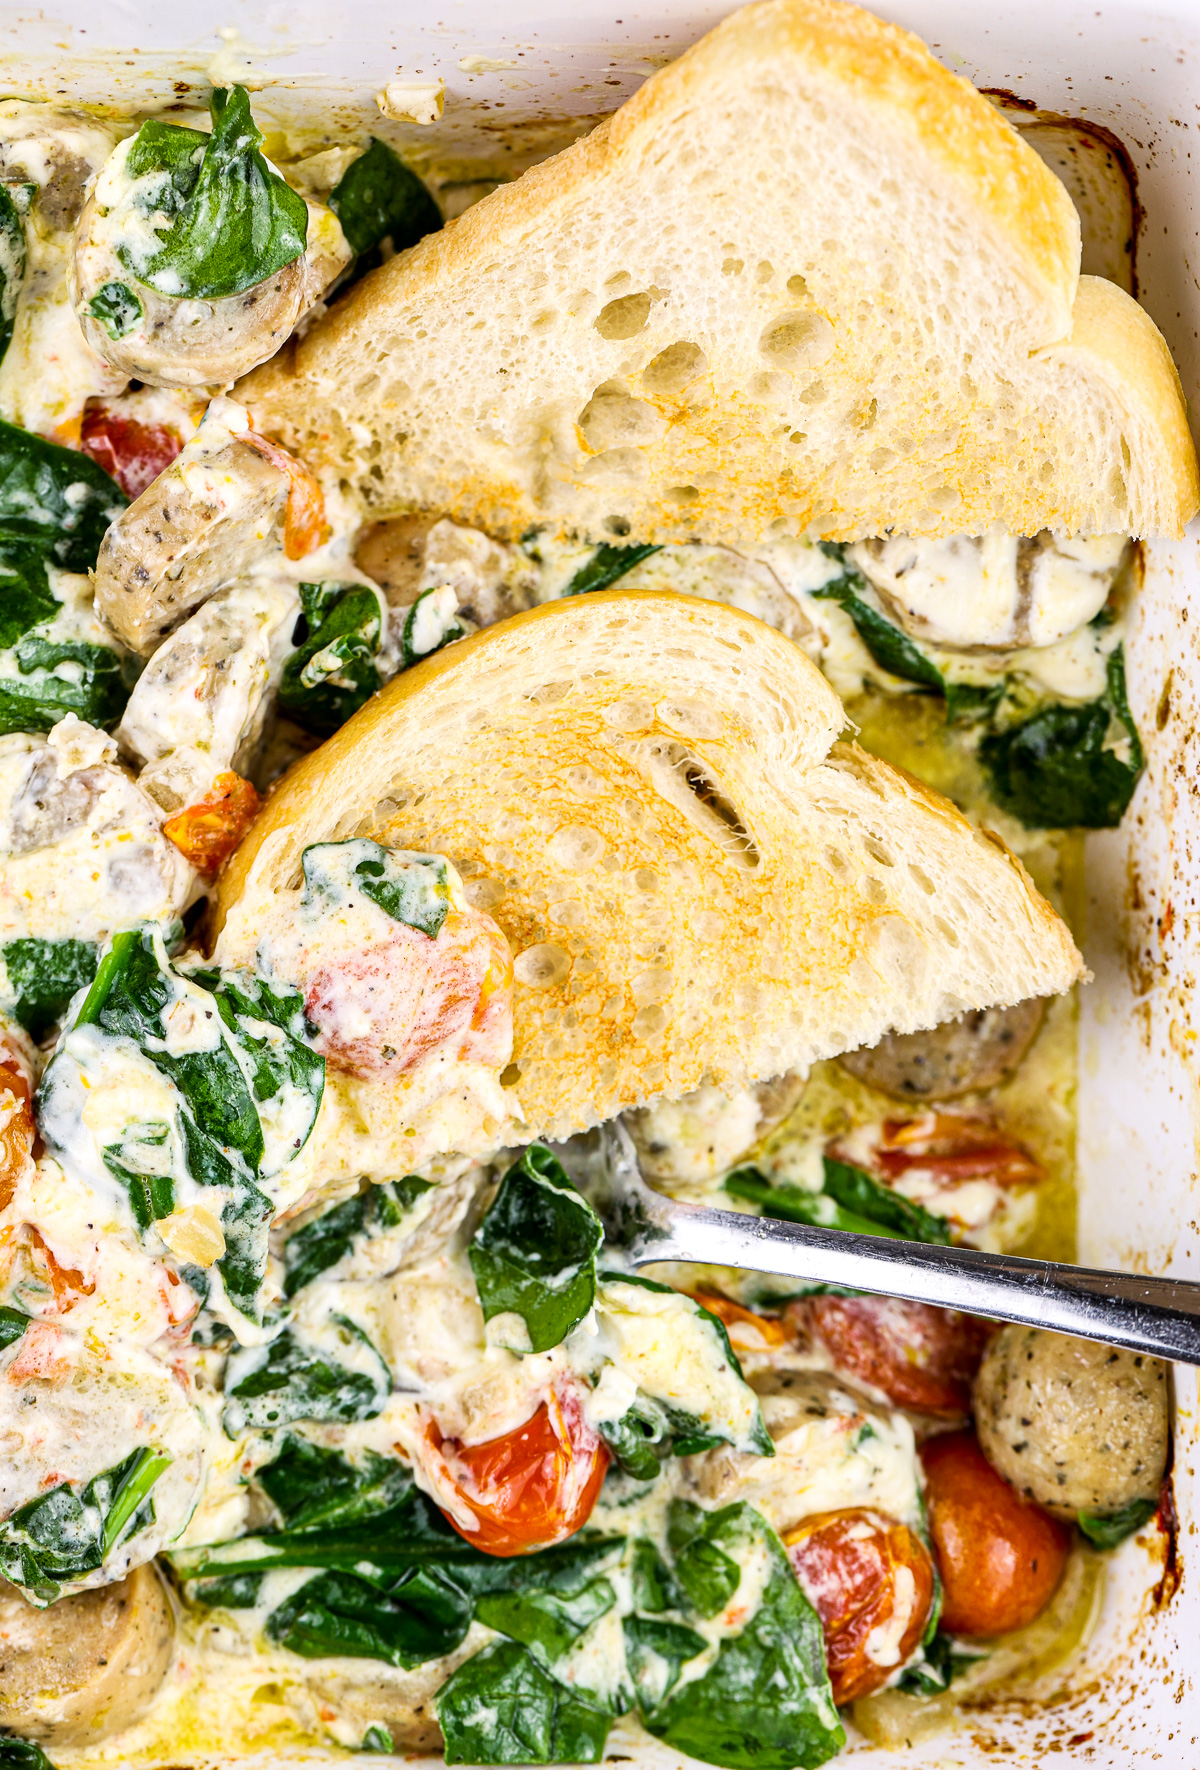 White backdrop with casserole dish filled with creamy white sauce, sausage, and tomatoes with cooked spinach and sliced bread.